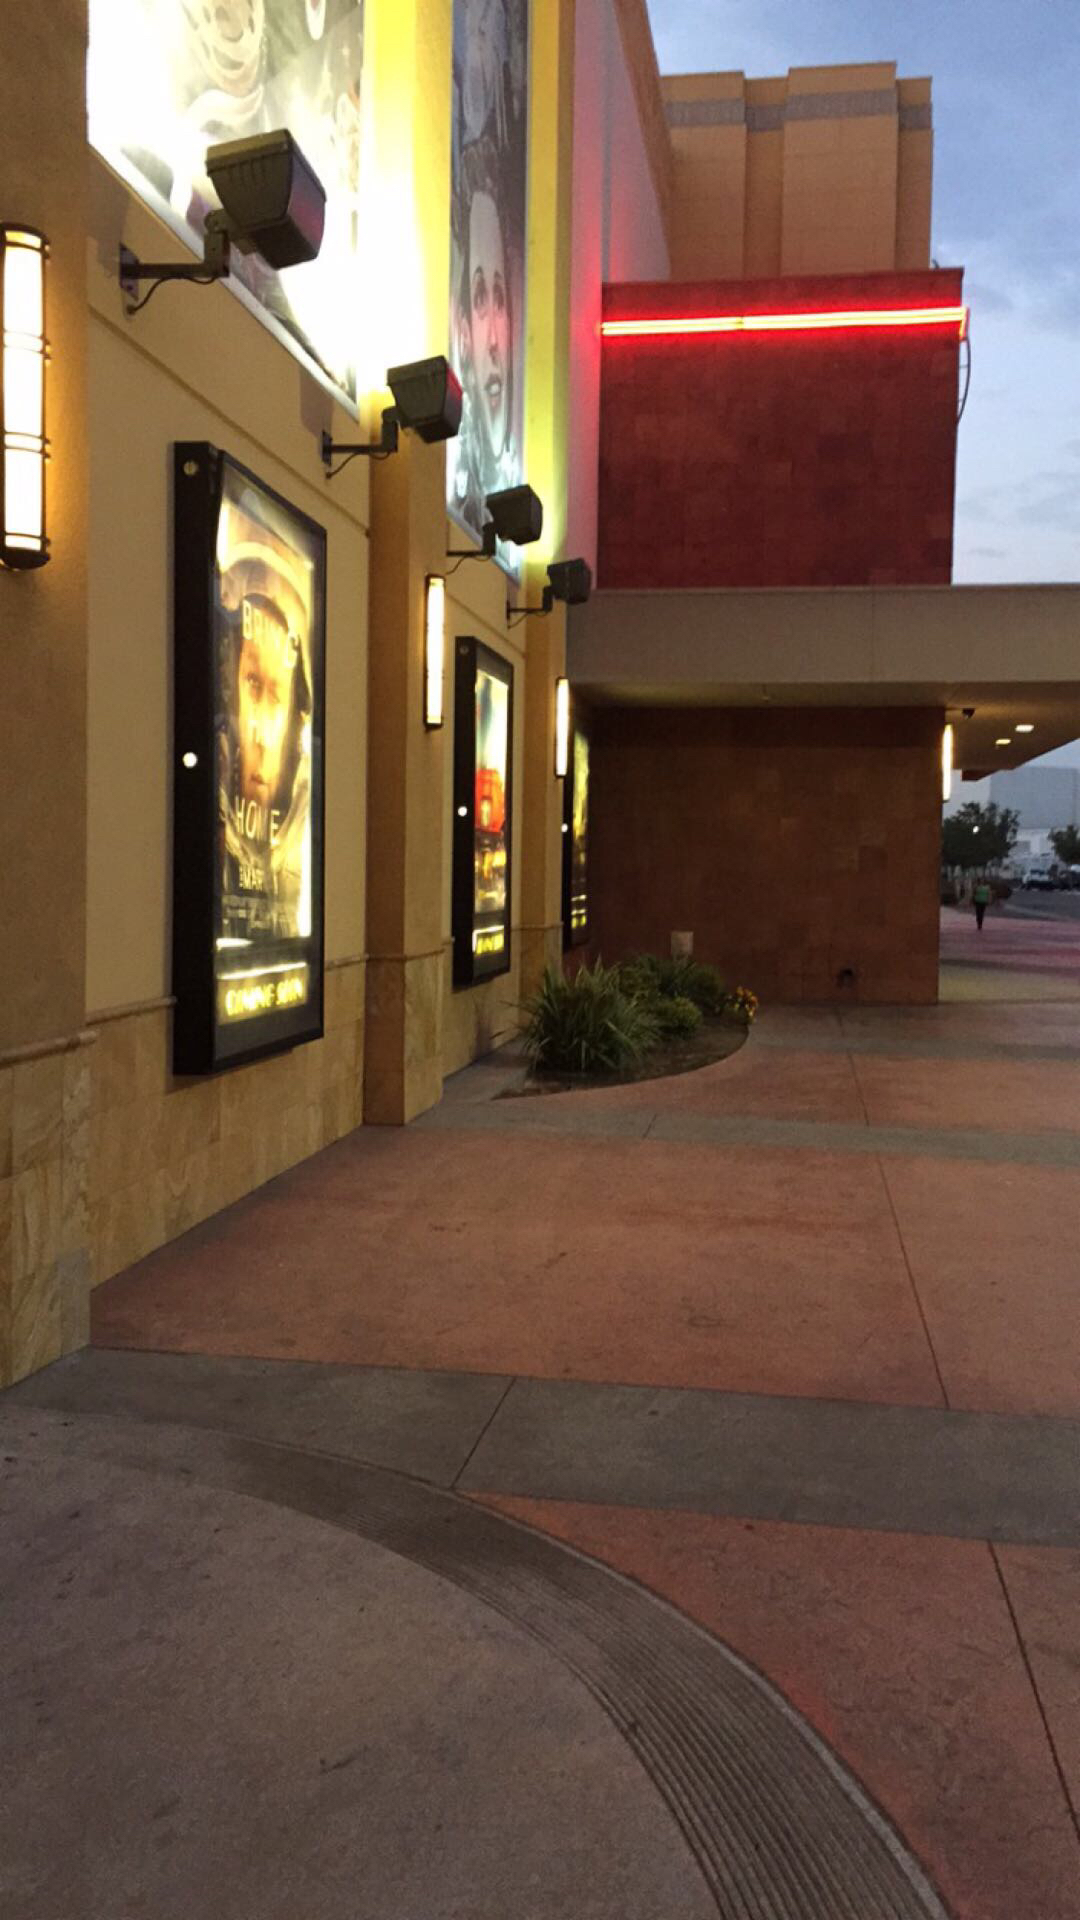 Onyx Store California : Best of onyx ca things to do nearby yp